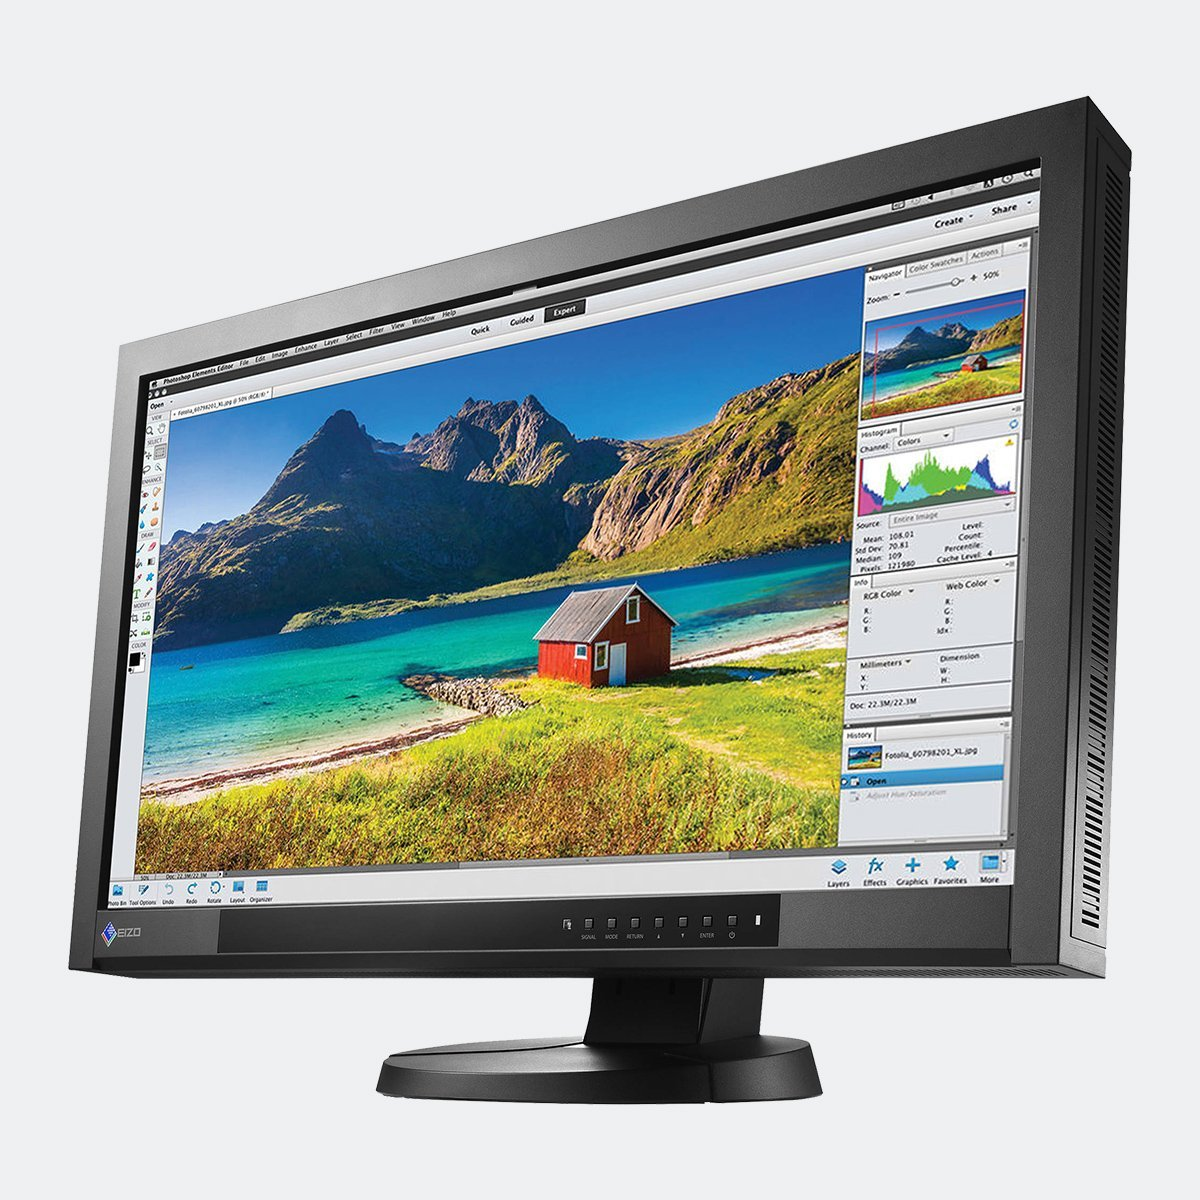 Ex-Demo EIZO CX270 ColorEdge monitor